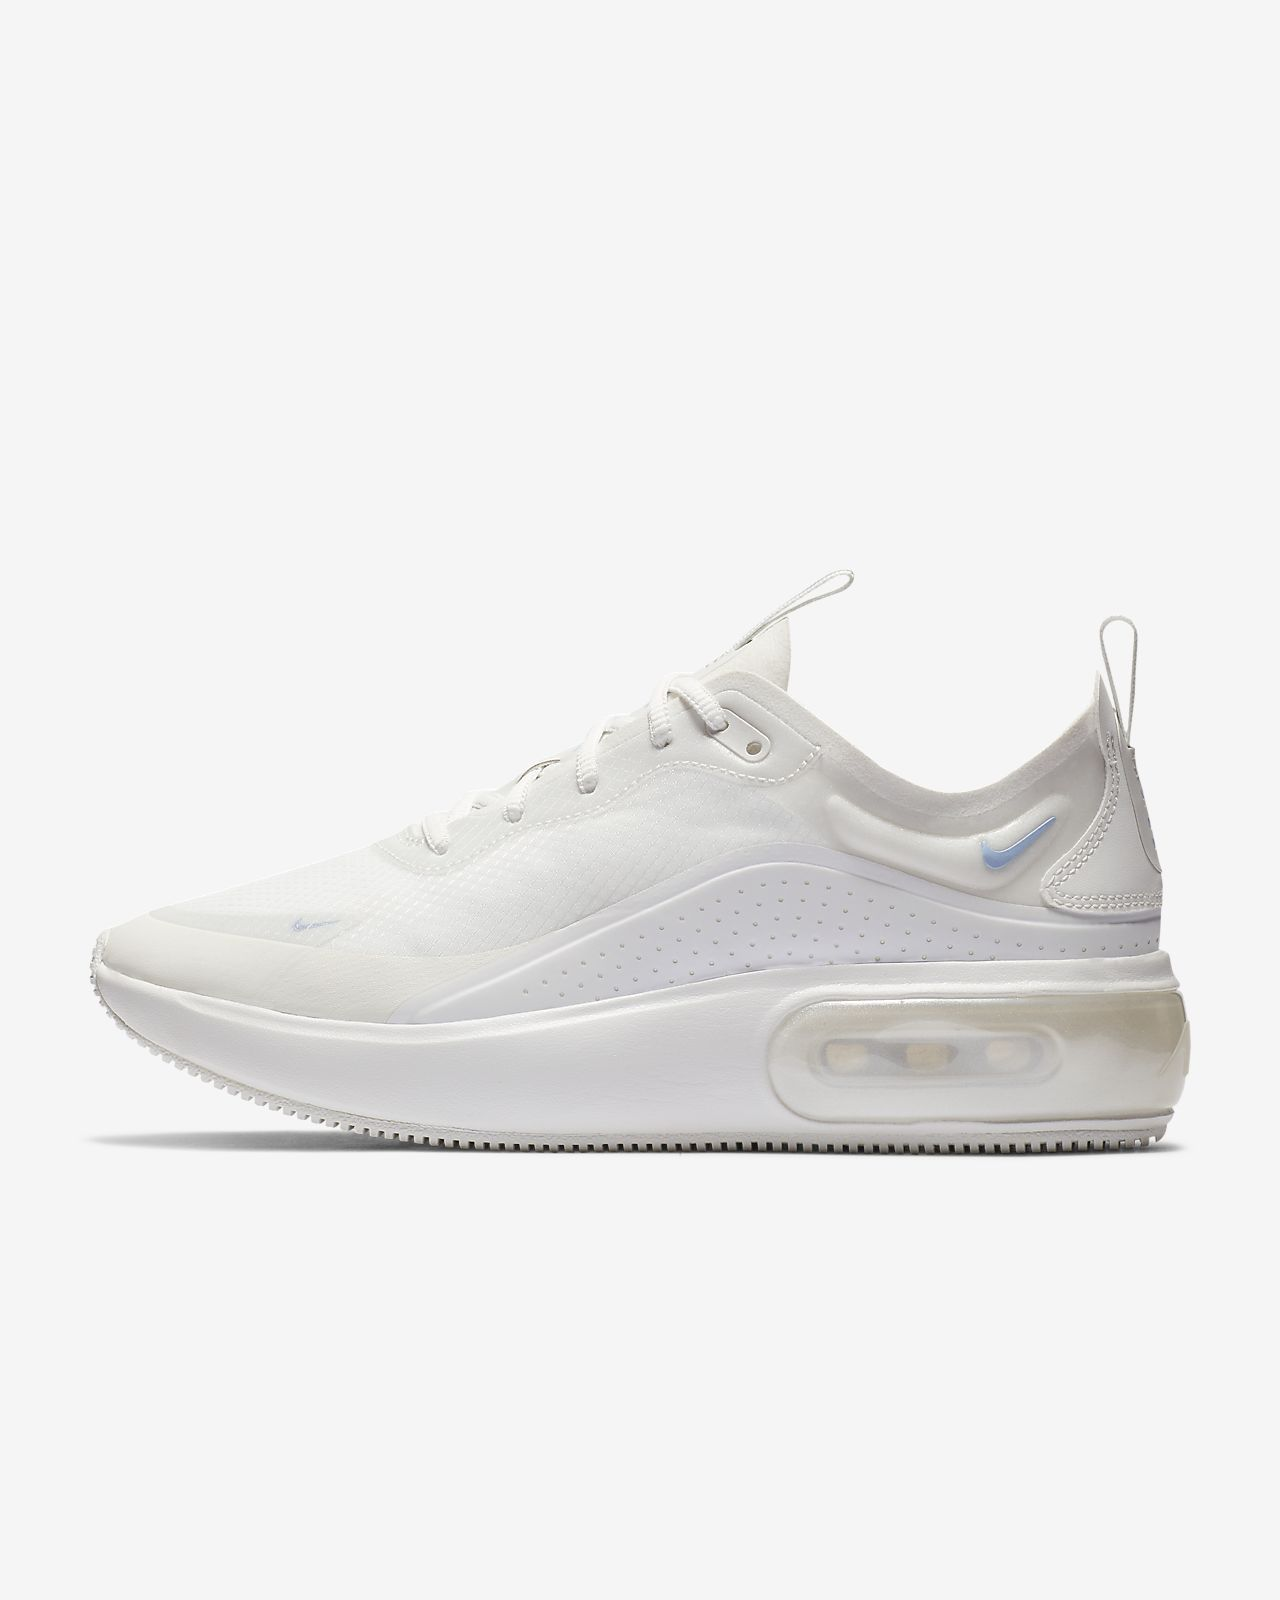 Be Femme Max Nike Air Pour Chaussure Se Dia S01Uwv